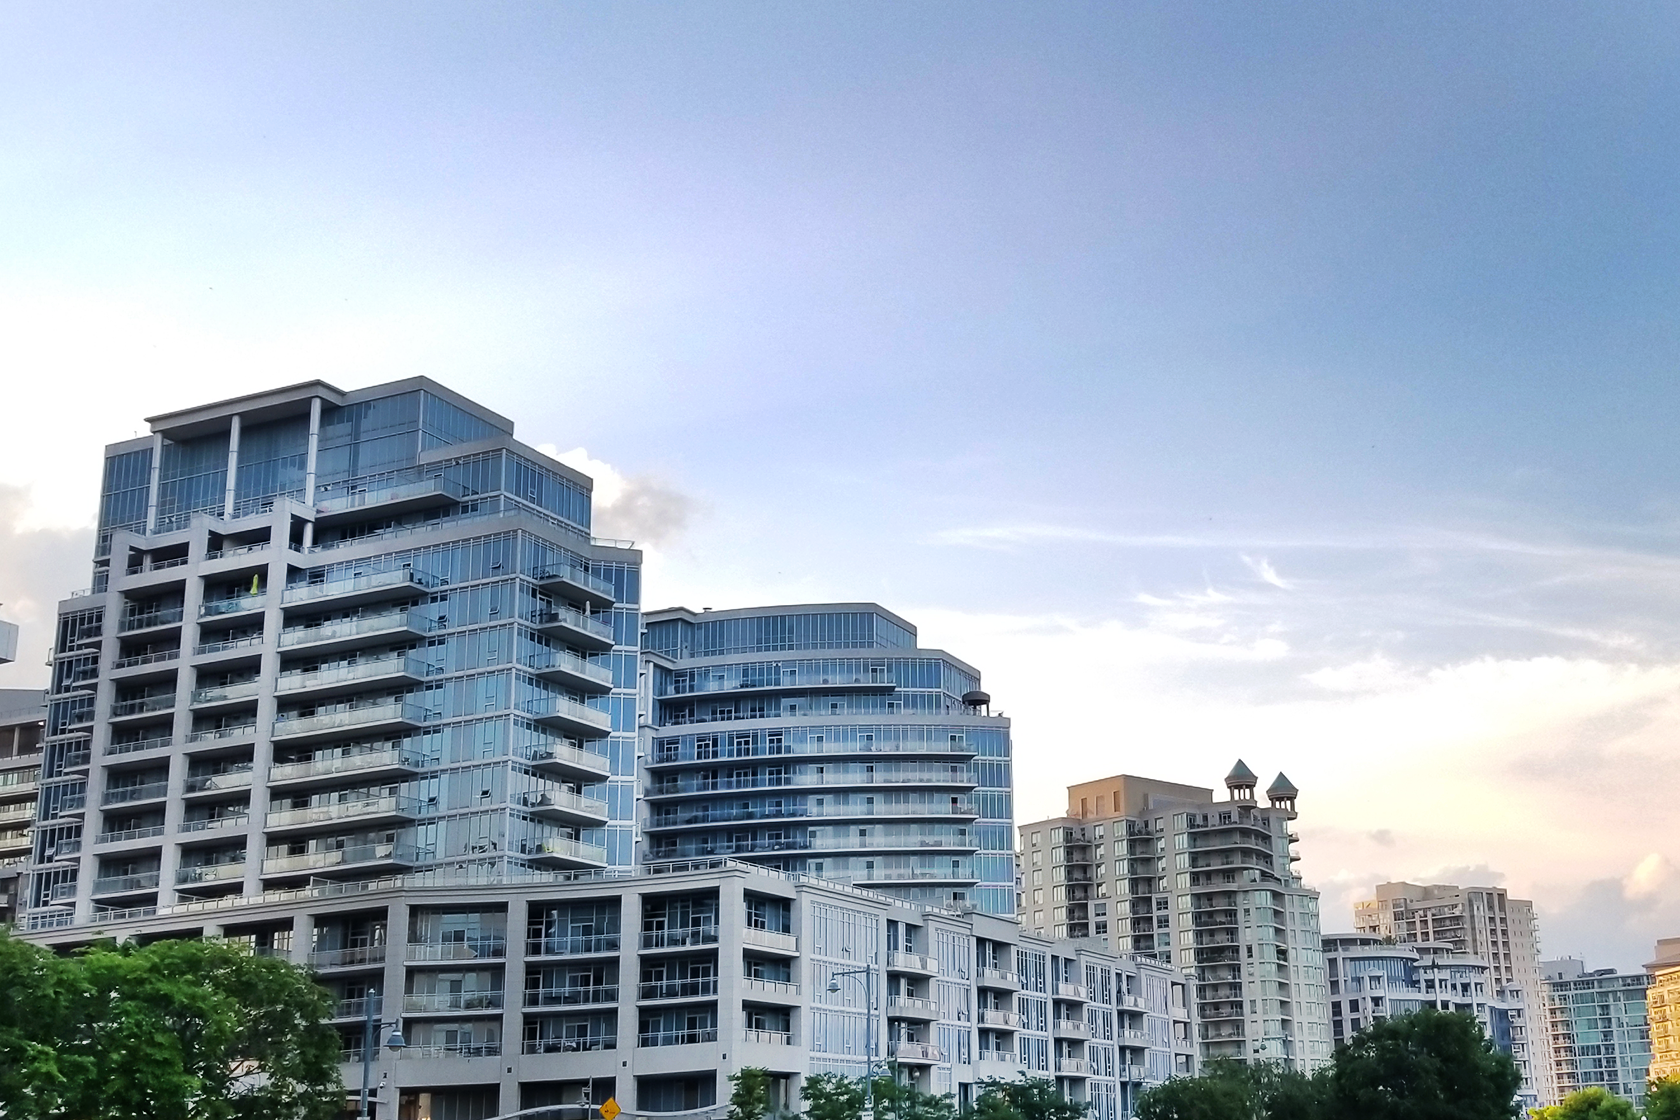 beyond the sea Explorer at Waterview | Monthly Featured Condo | August 2017 58 marine parade dr toronto explorer at waterview condo etobicoke condos mimico condos humber bay condos toronto condos for sale